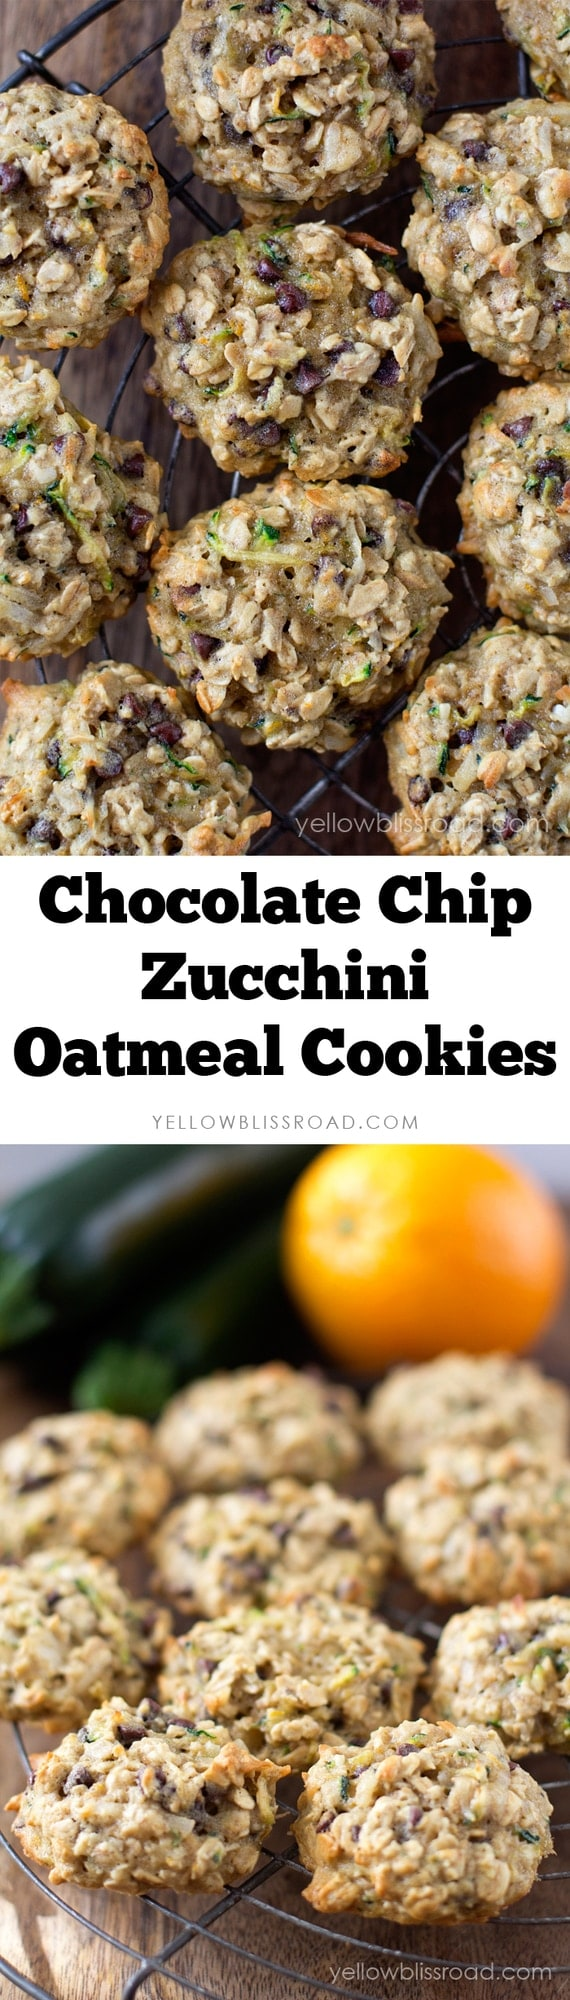 Chocolate Chip Zucchini Oatmeal Cookies